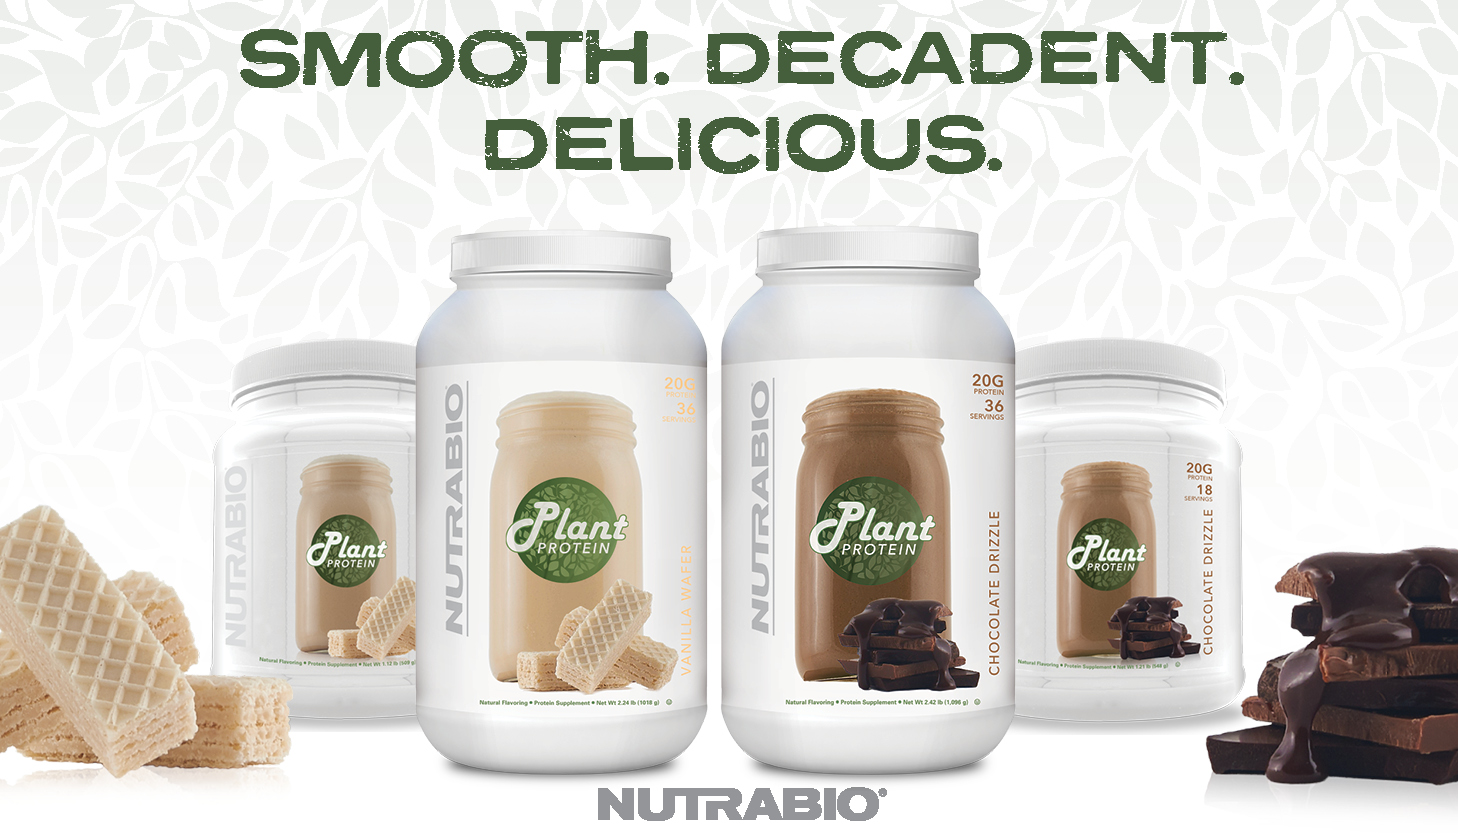 NutraBio Plant Protein is Now in Chocolate Drizzle and Vanilla Wafer!